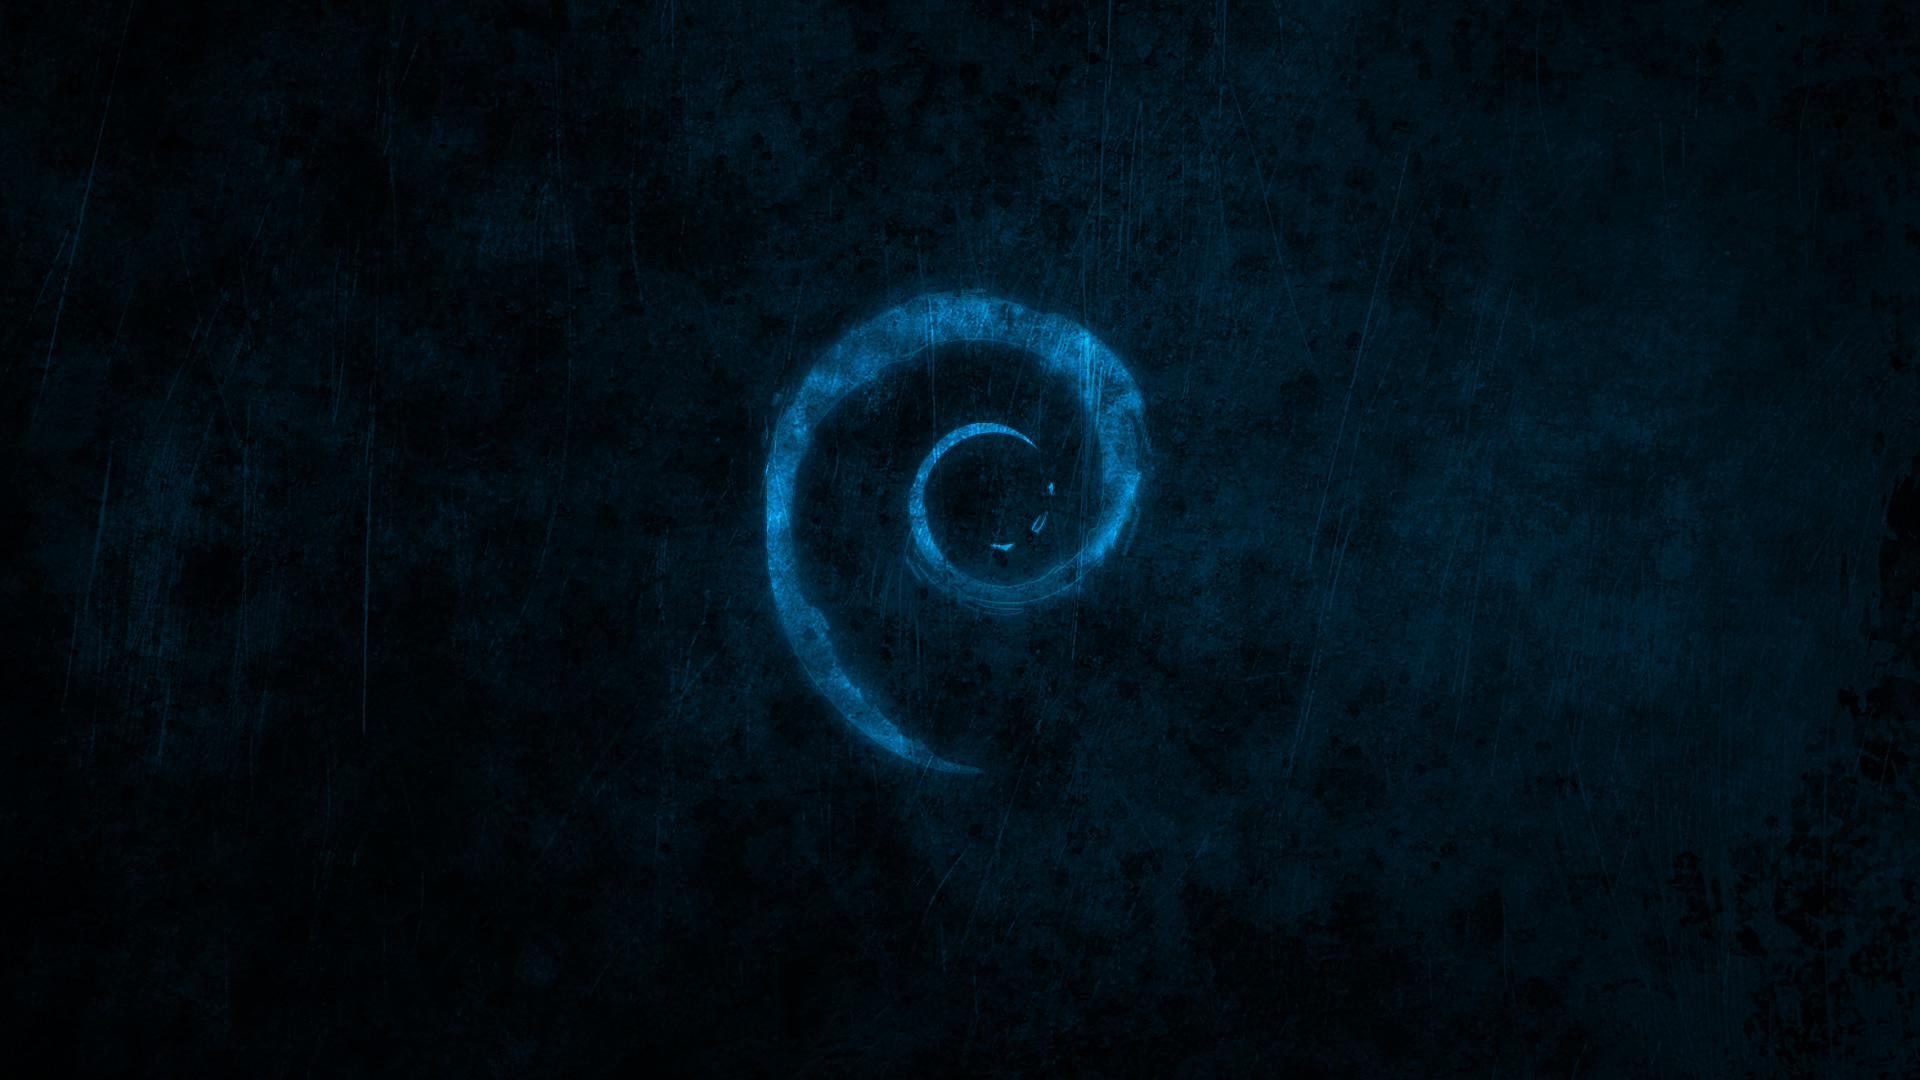 http://fc00.deviantart.net/fs71/f/2011/246/c/9/debian_dark_wallpapers_hd_1080_by_malkowitch-d3f5ydf.jpg